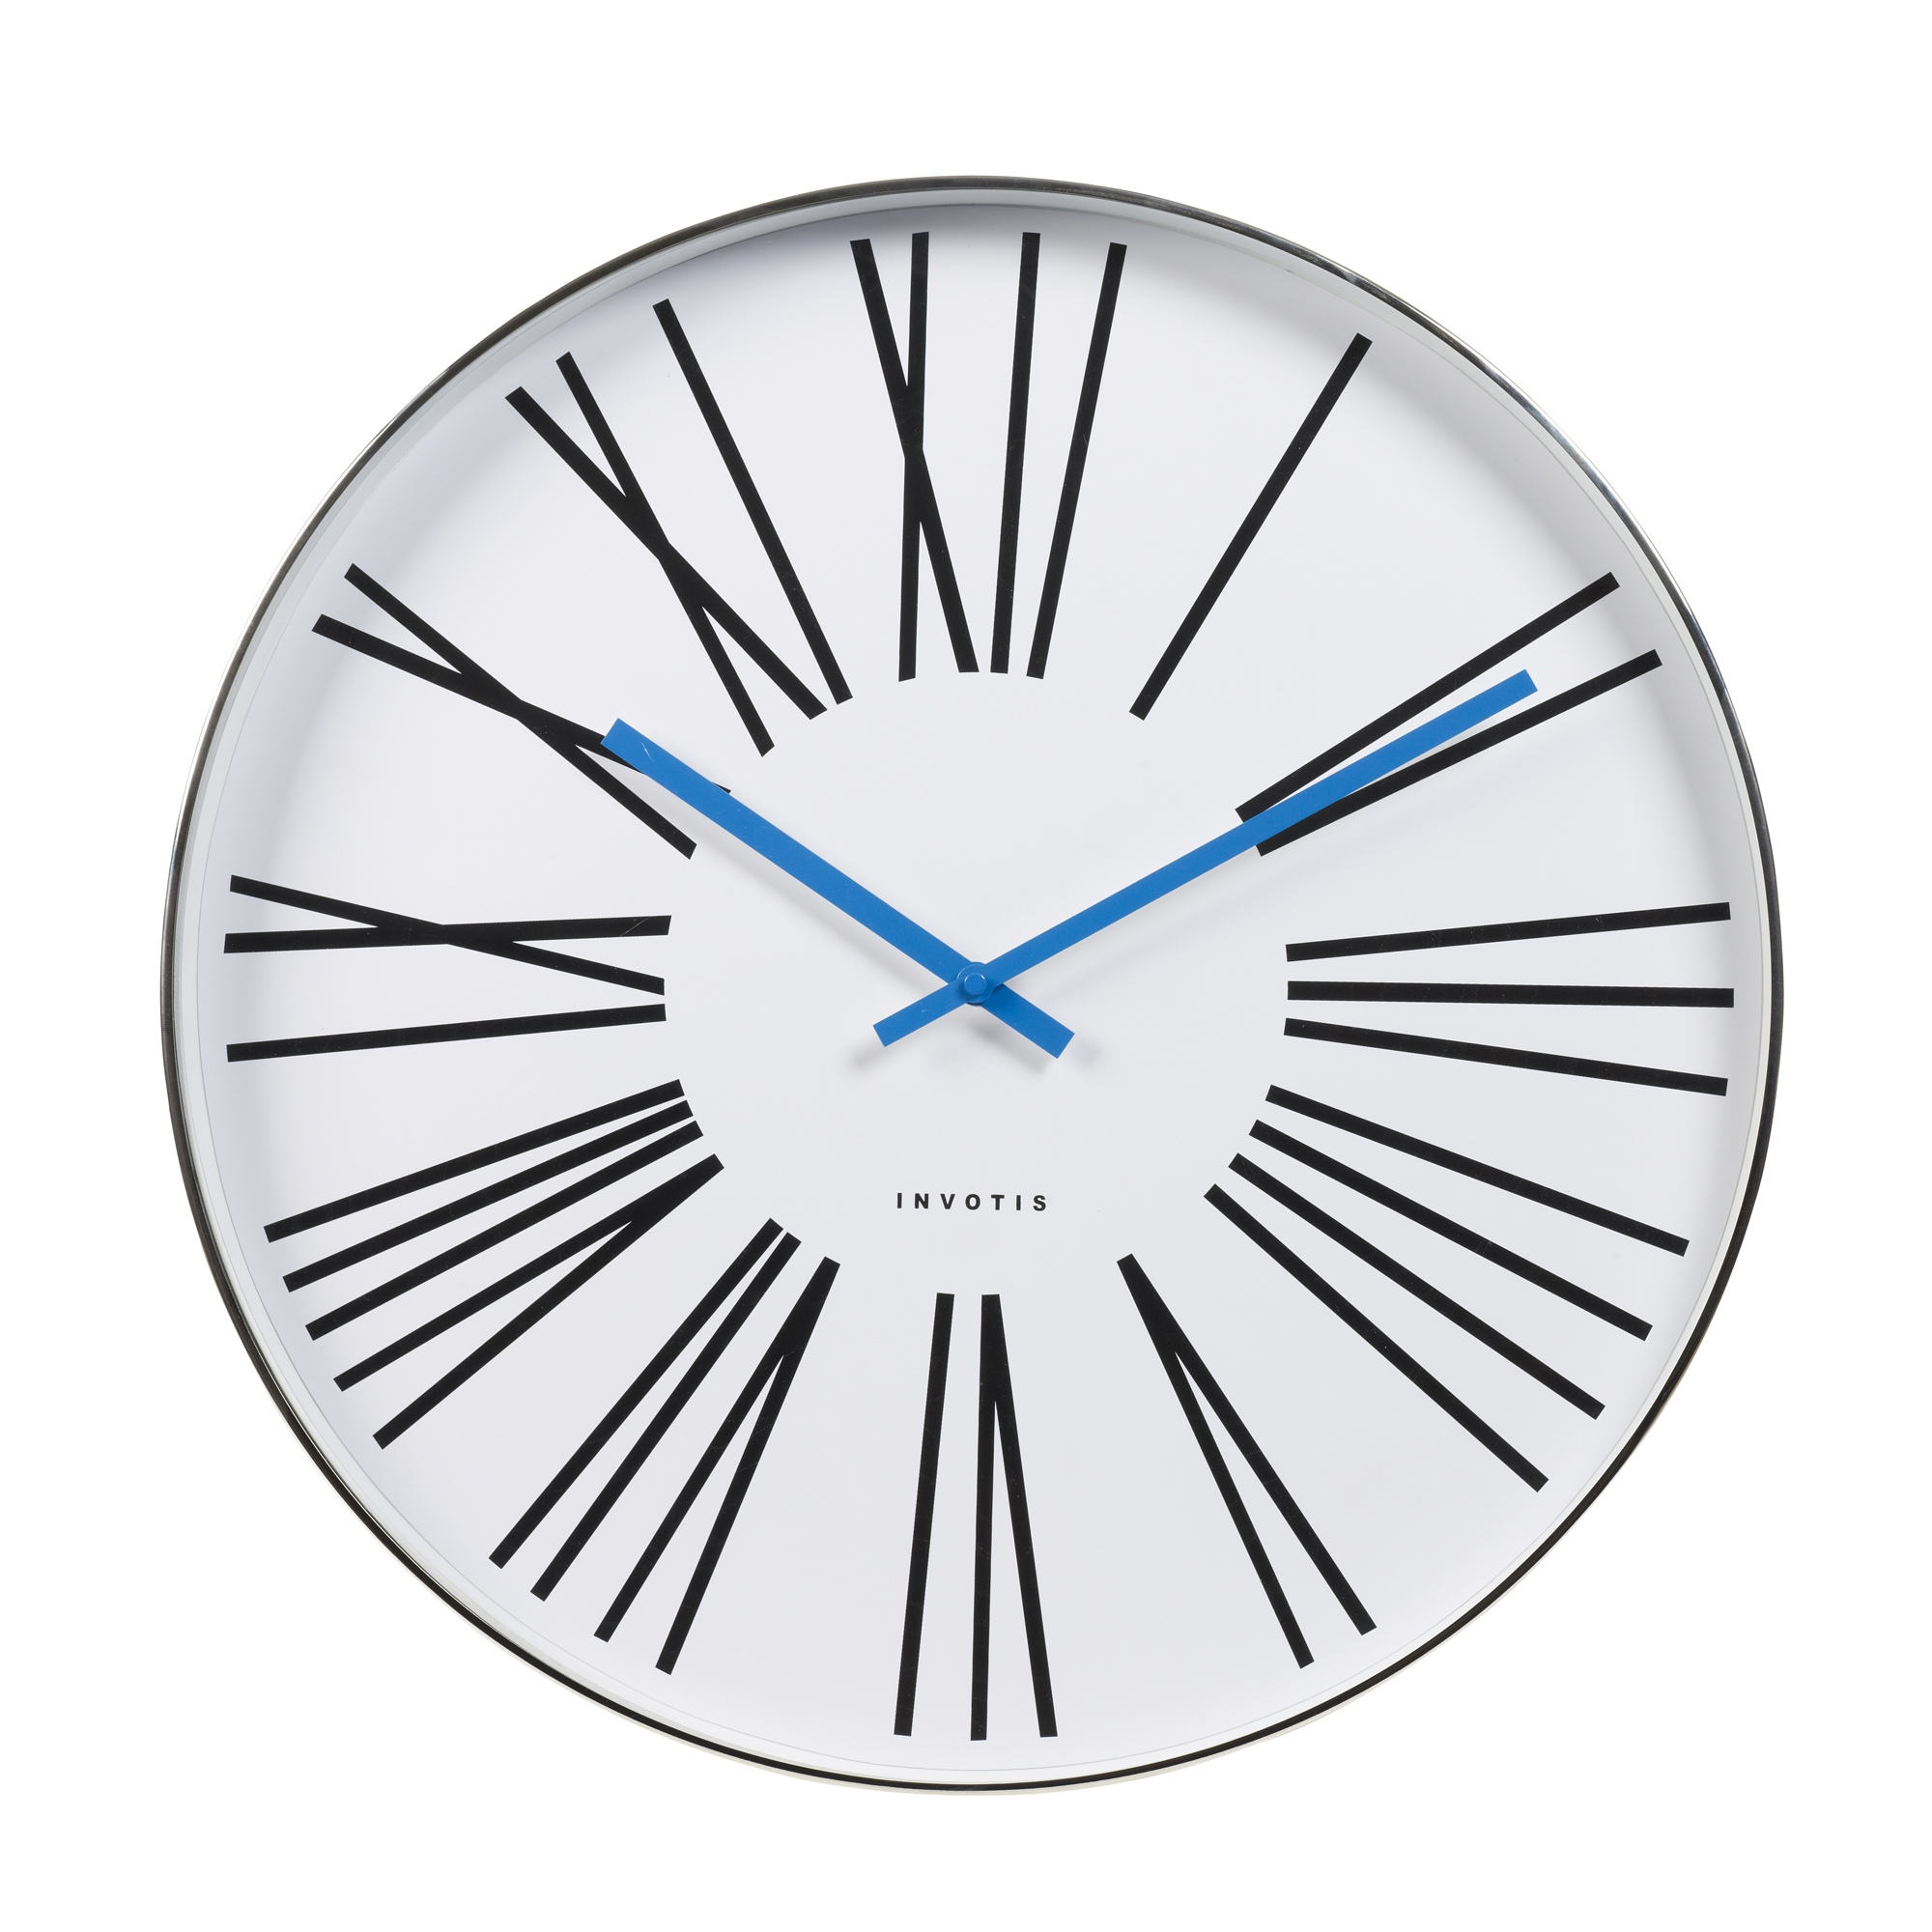 Furniture inspiring oversized wall clock for wall accessories invotis oversized wall clock with roman numerals and blue hand amipublicfo Gallery